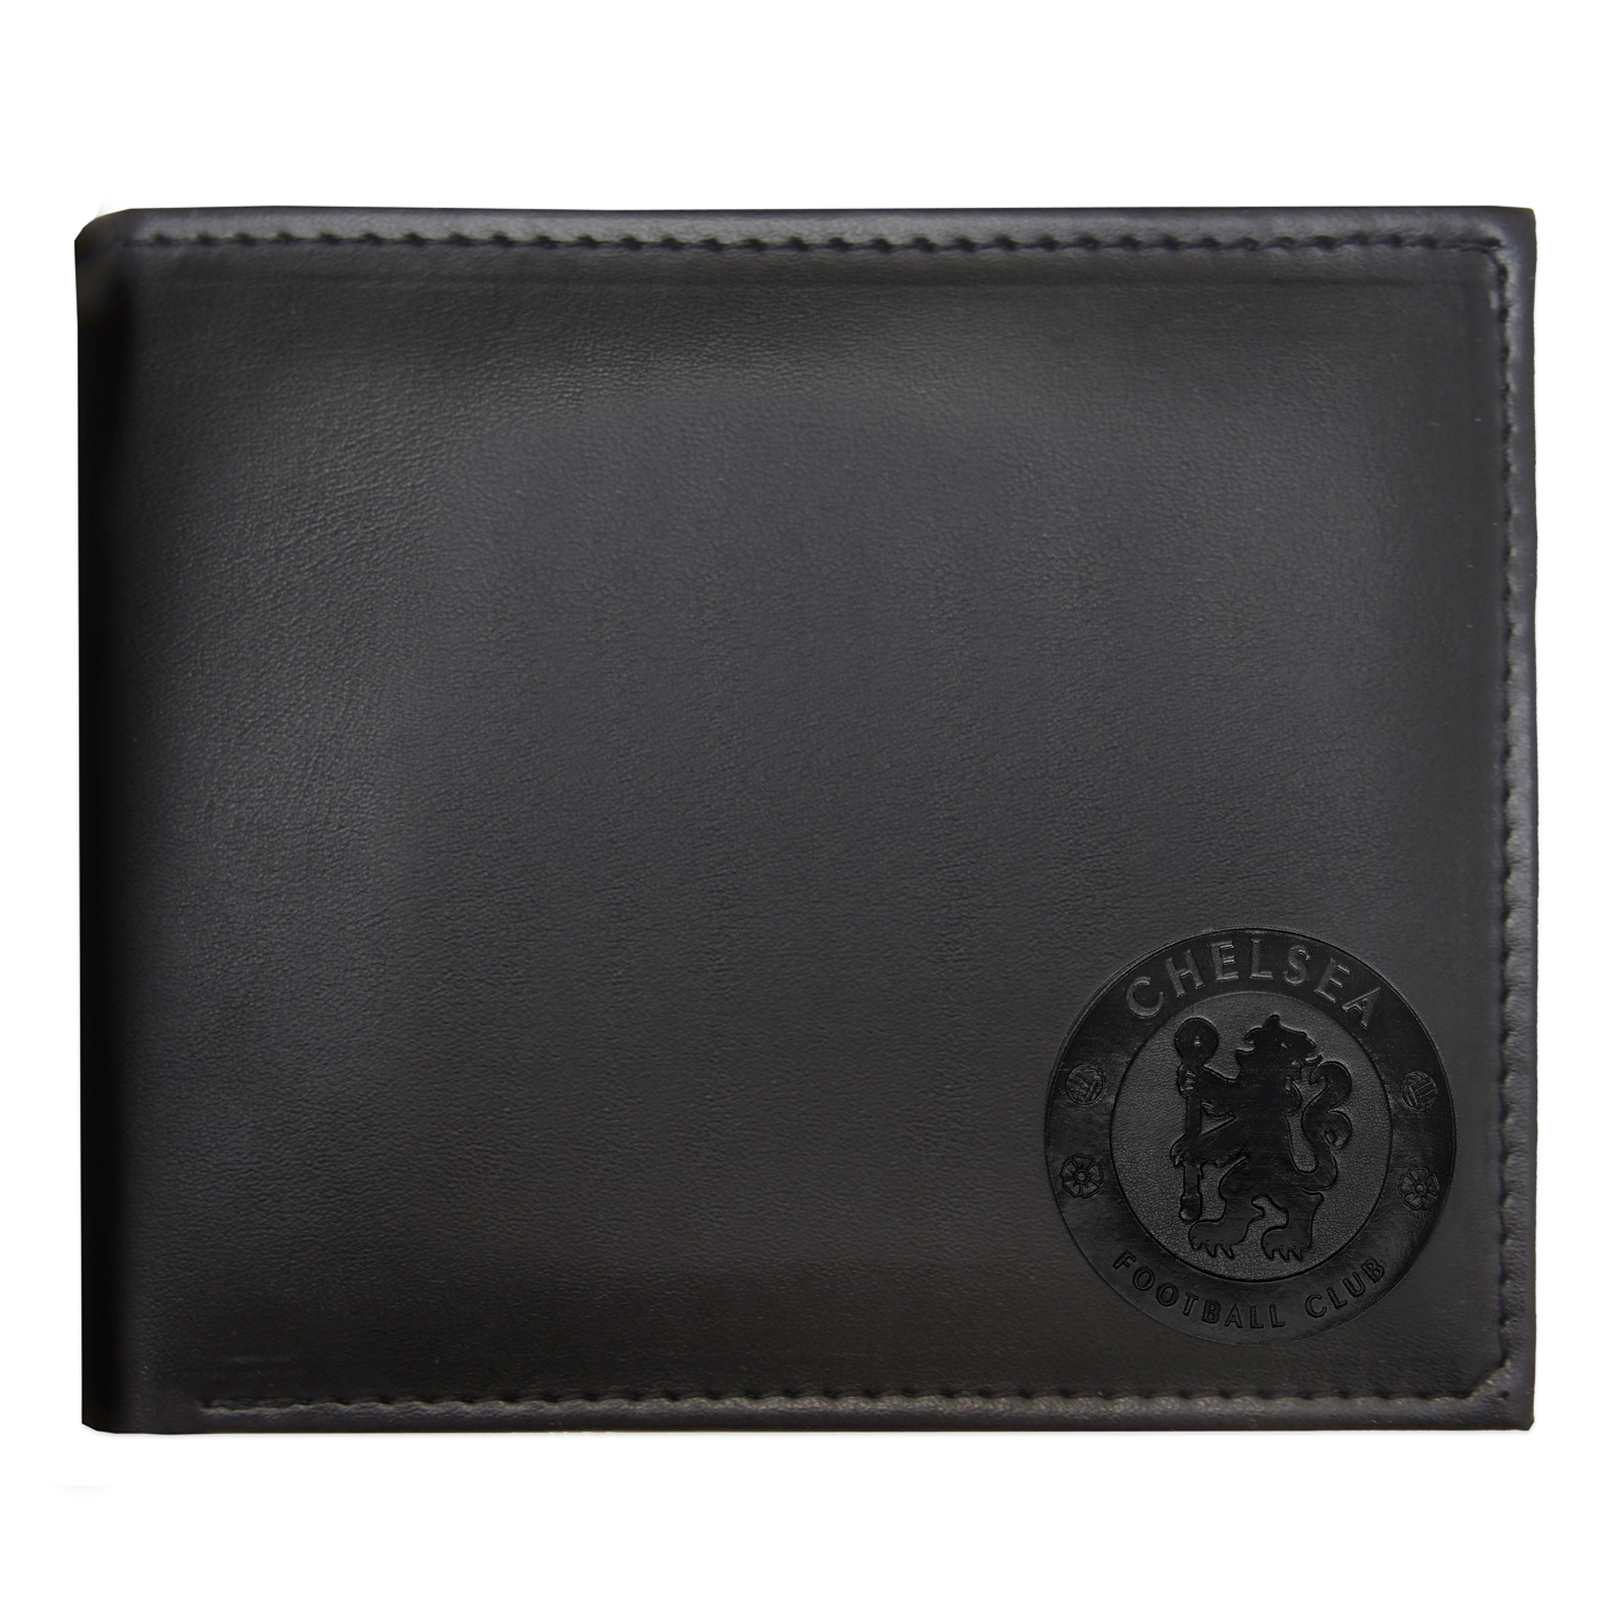 Chelsea-FC-Official-Football-Gift-Embossed-Crest-Wallet-Black miniatura 7